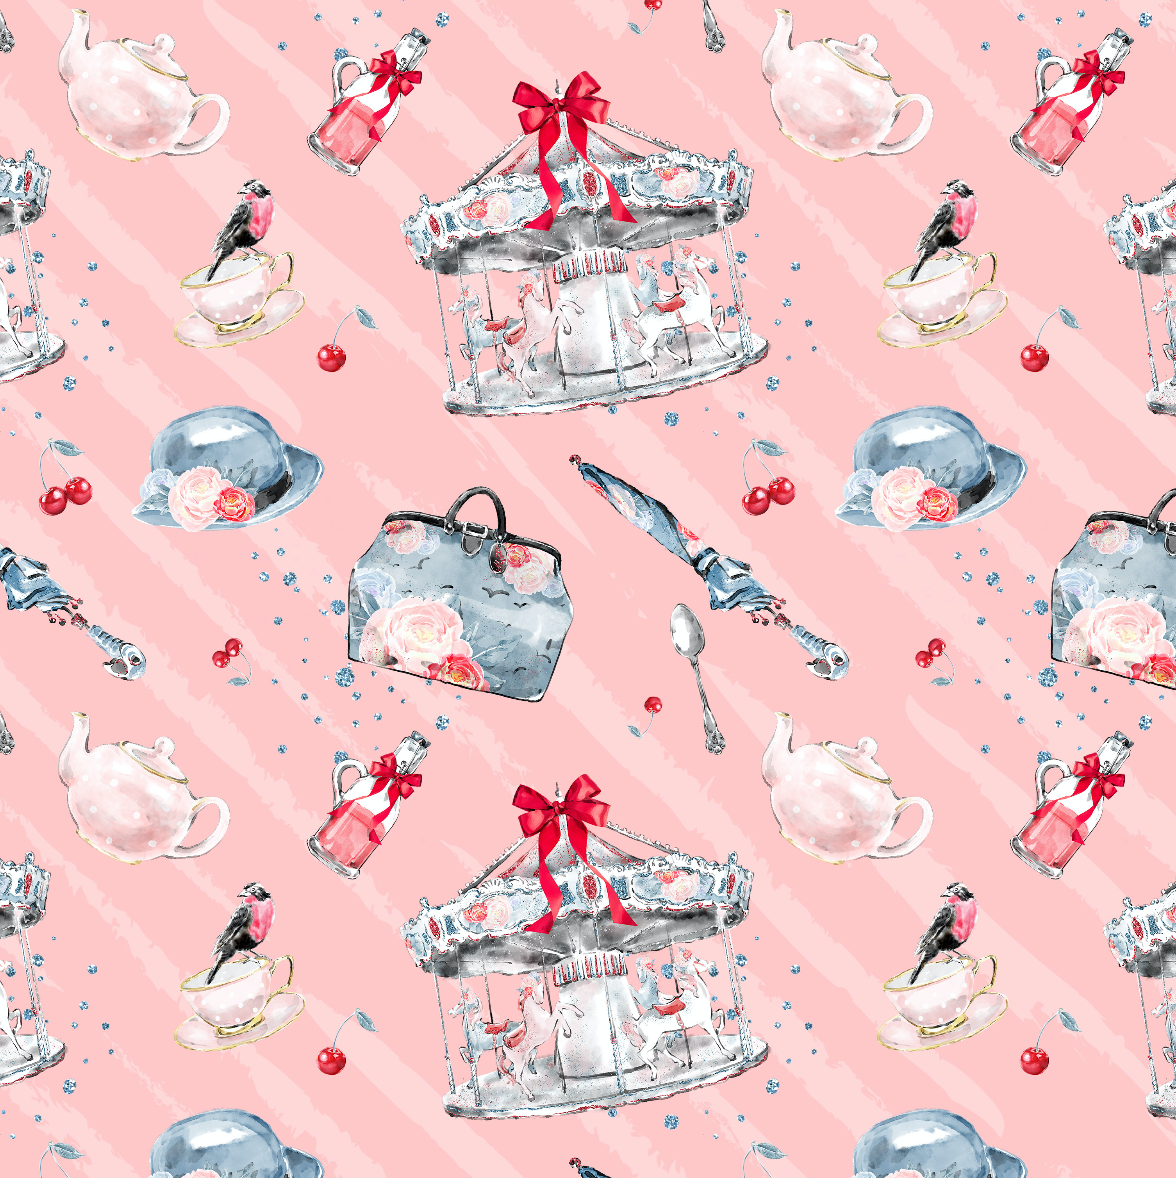 PRE ORDER - Mary Poppins Pink Carousel - Digital Fabric Print